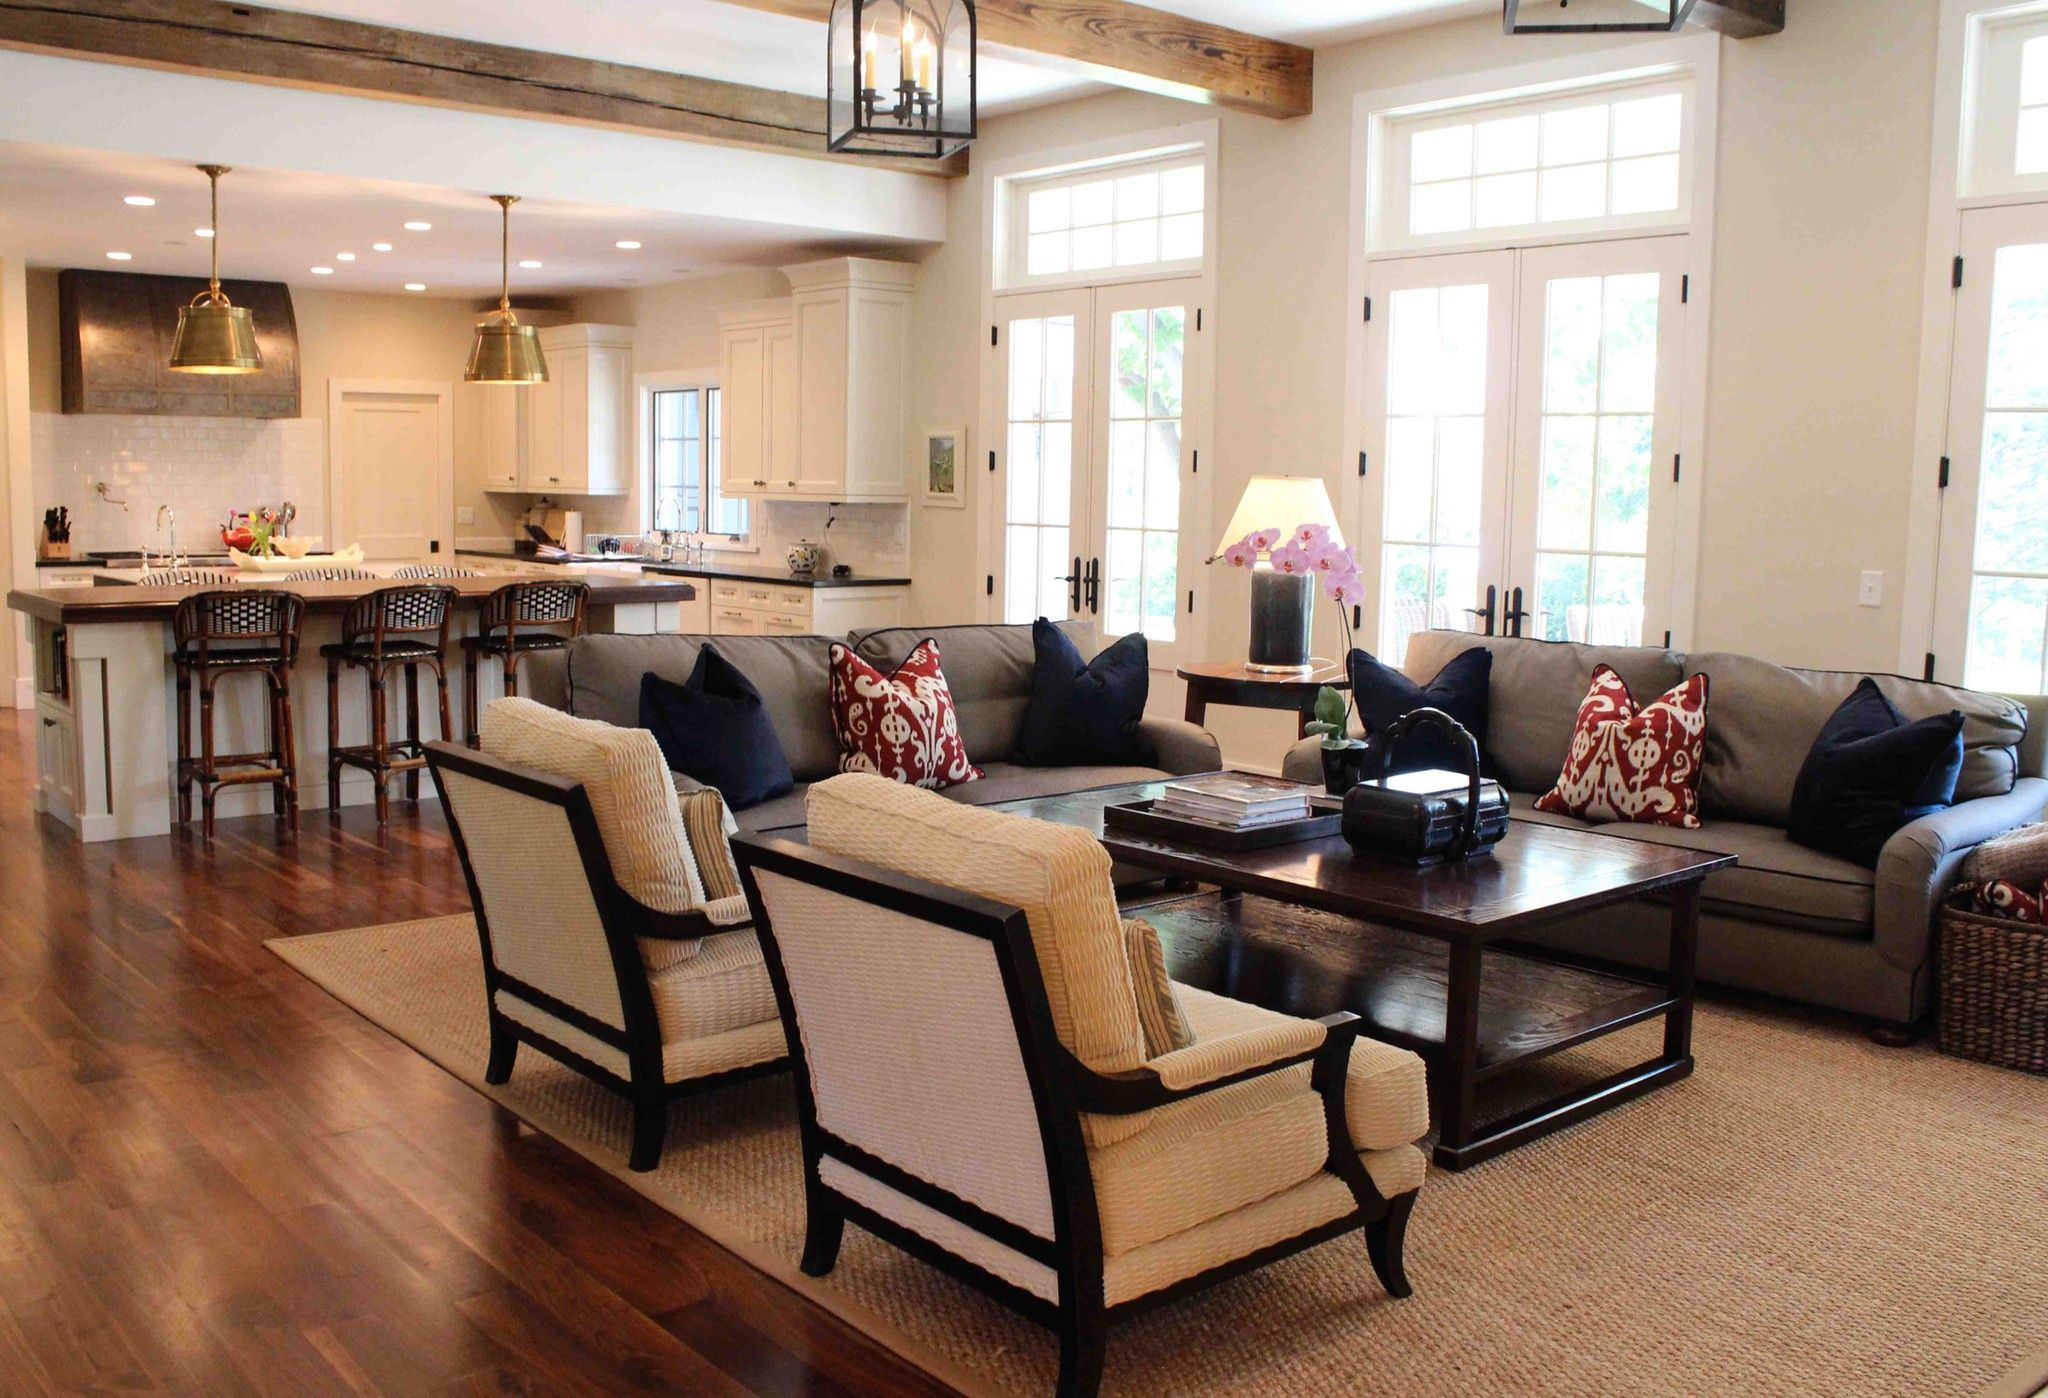 Use Classic Ceiling Lamps for Old Fashioned Living Room Layout with Dark Coffee Table and Grey Sofas